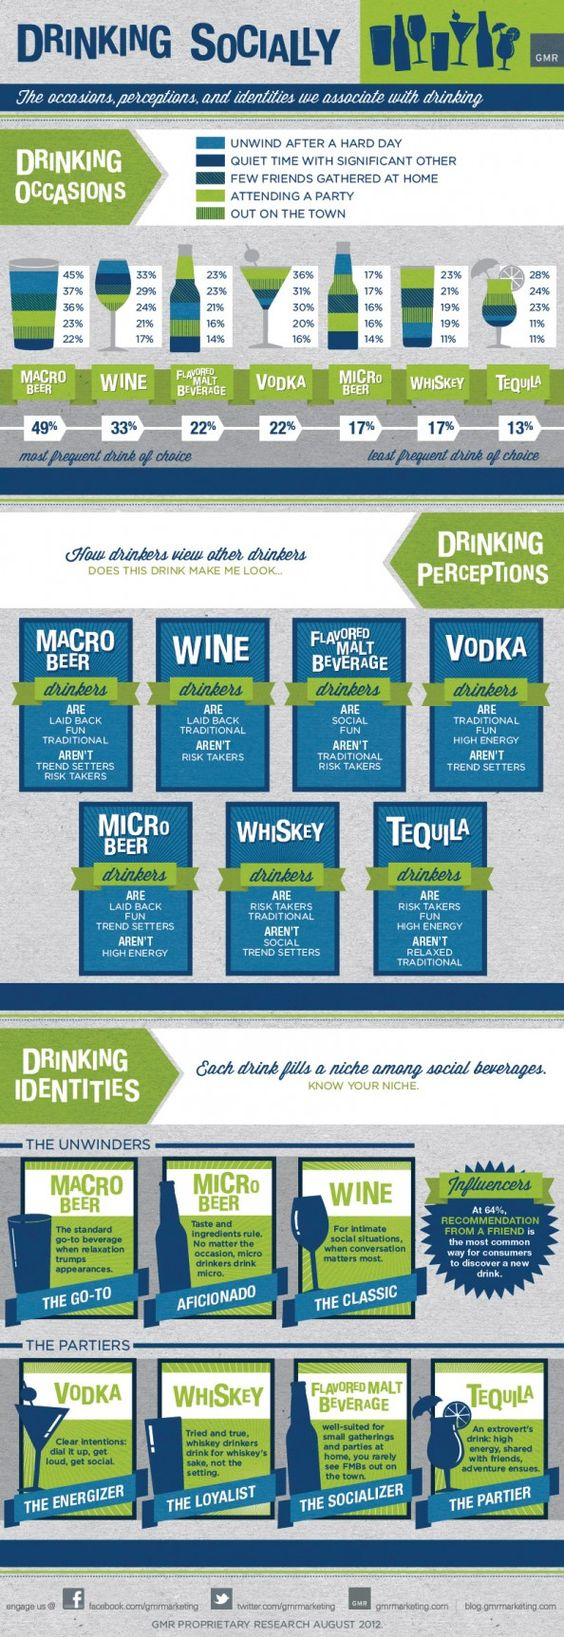 Drinking Socially Infographic